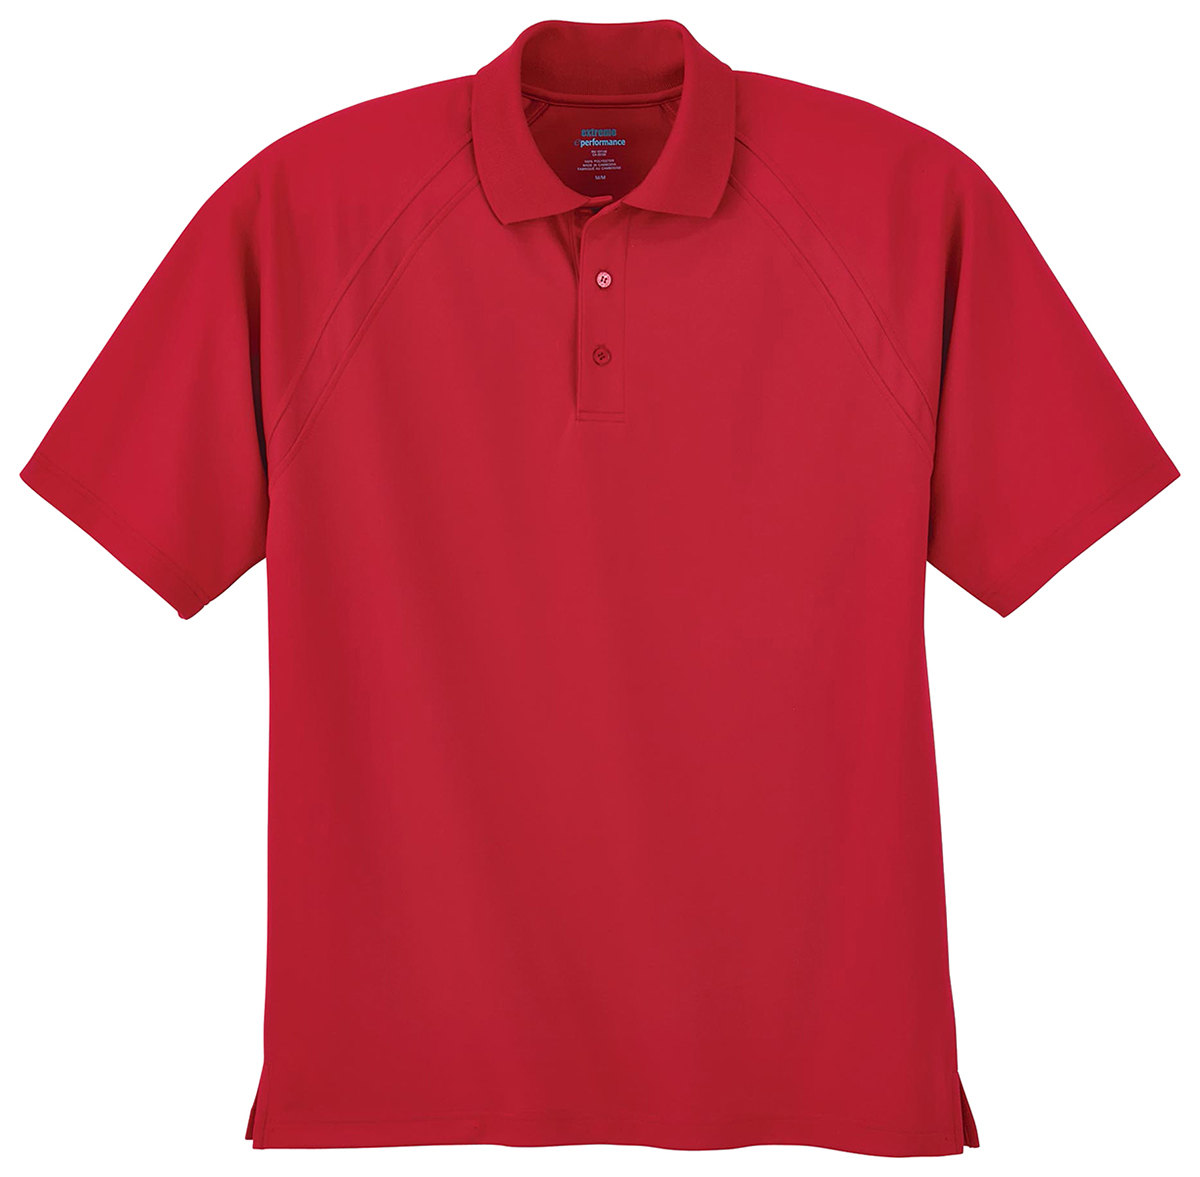 Extreme men 39 s moisture wicking polyester short sleeve polo for Polyester t shirts for men